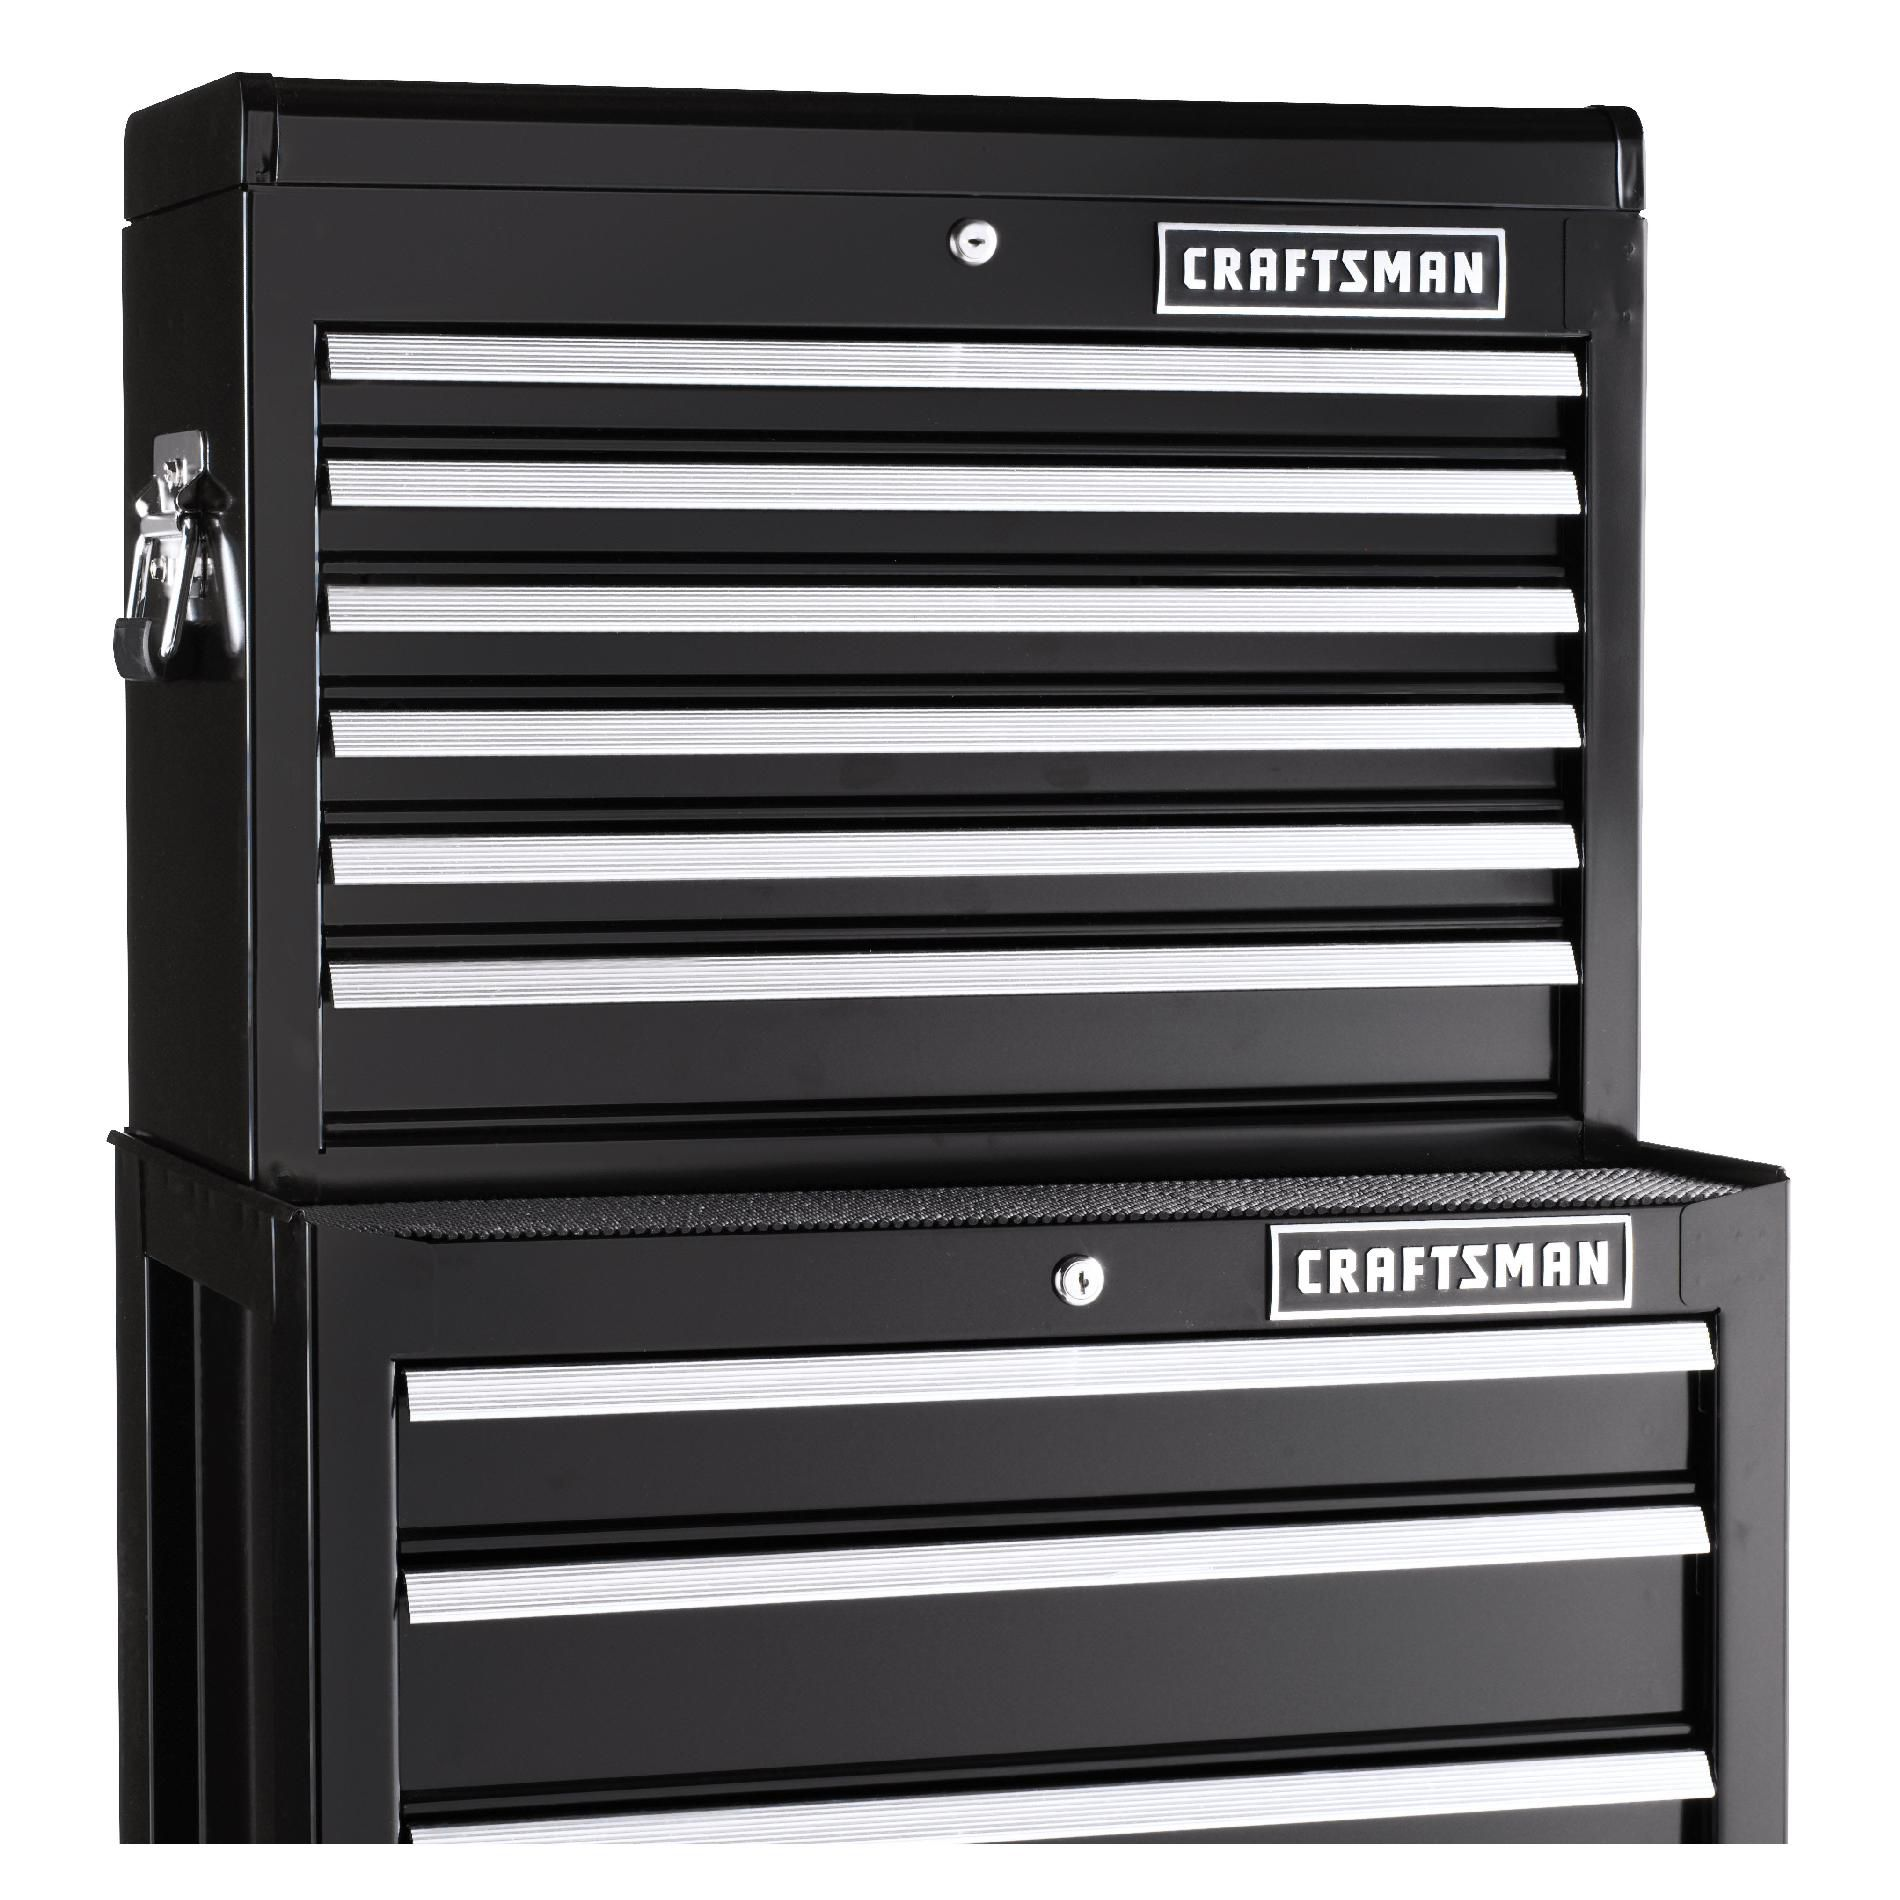 Craftsman 26 in. Wide 6 Drawer Heavy Duty Top Chest, Black